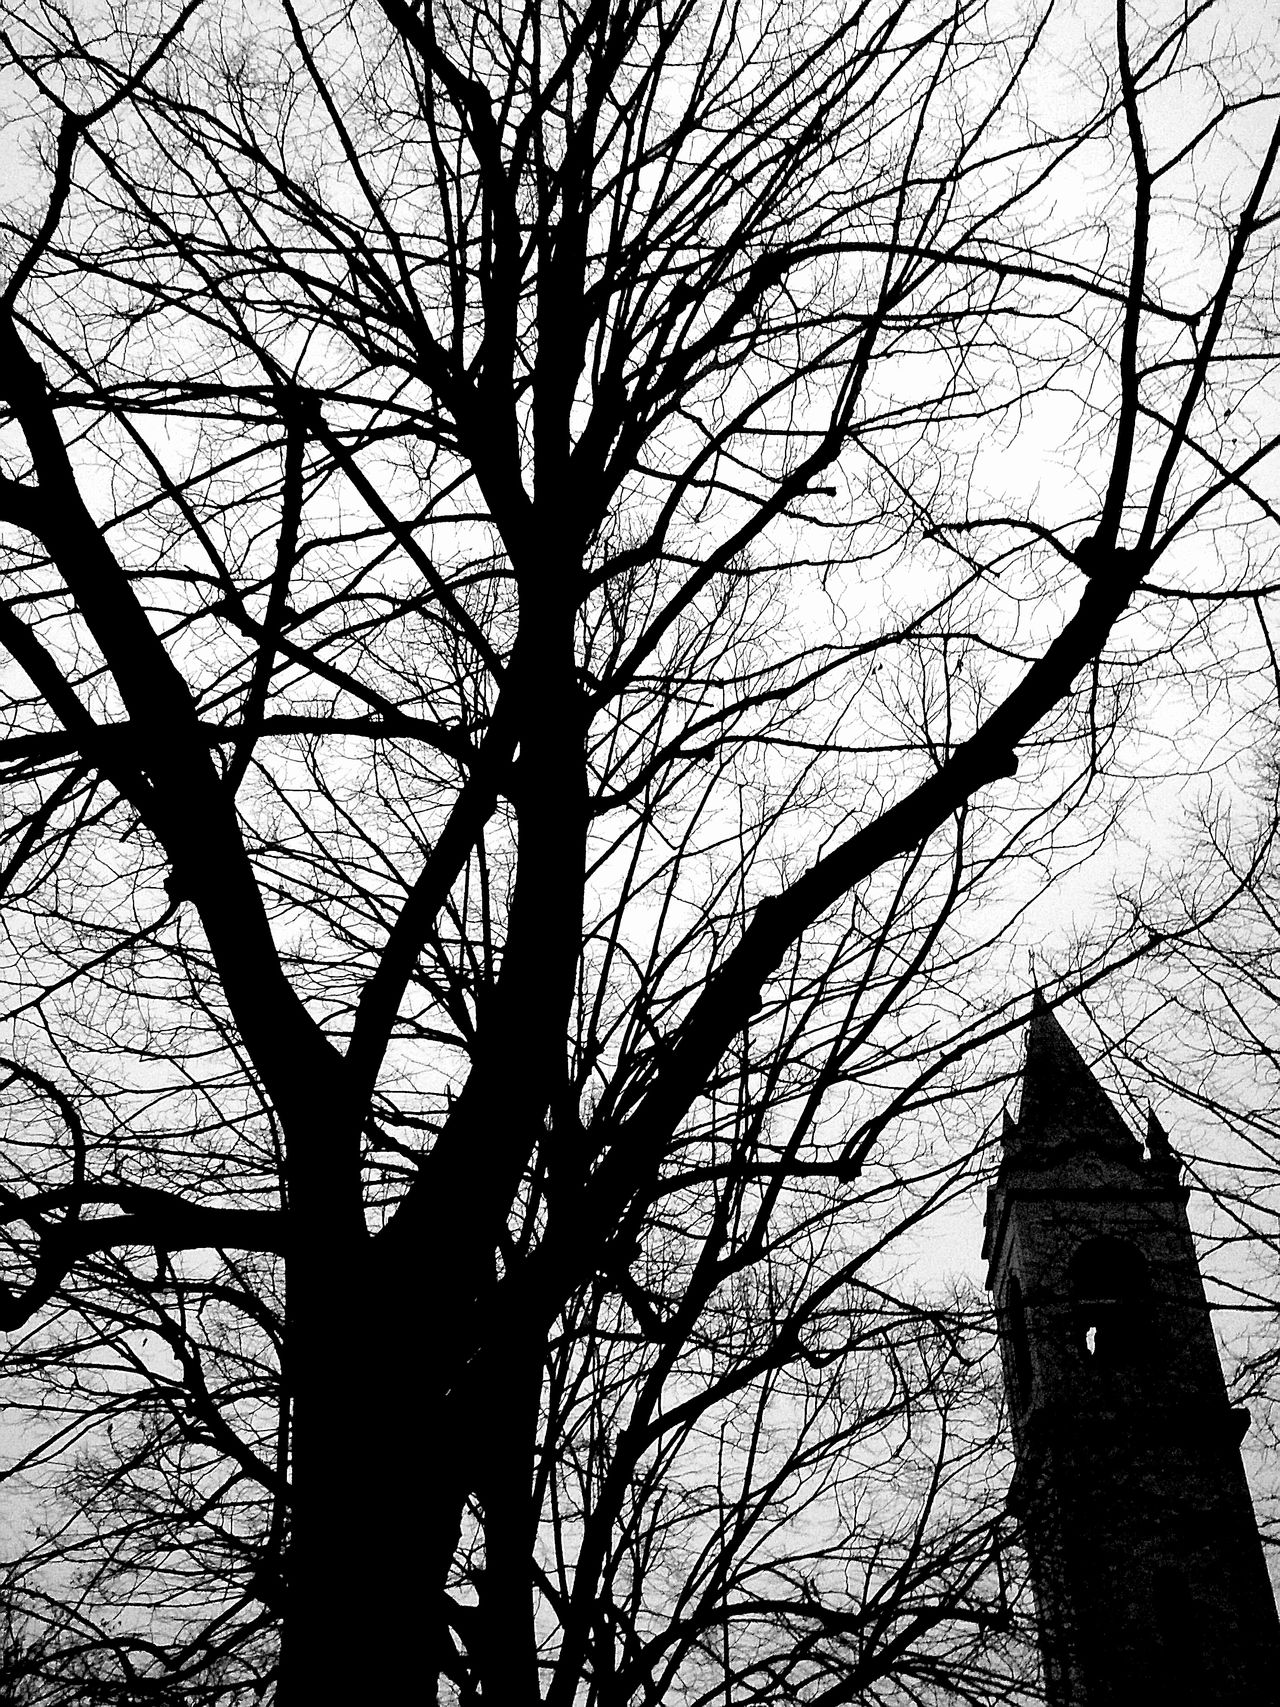 Low Angle View Tree Branch Sky No People Nature Outdoors Day Architecture City Black And White Close-up People Of EyeEm The Street Photographer - 2016 EyeEm Awards The Great Outdoors - 2016 EyeEm Awards TheWeek On EyEem The Photojournalist - 2016 EyeEm Awards The 2016 EyeEm Awards The Eyeem Award 2016 TheWeekOnEyeEM Igersworldwide The Week Of Eyeem Dark Dramatic Sky Igersfc